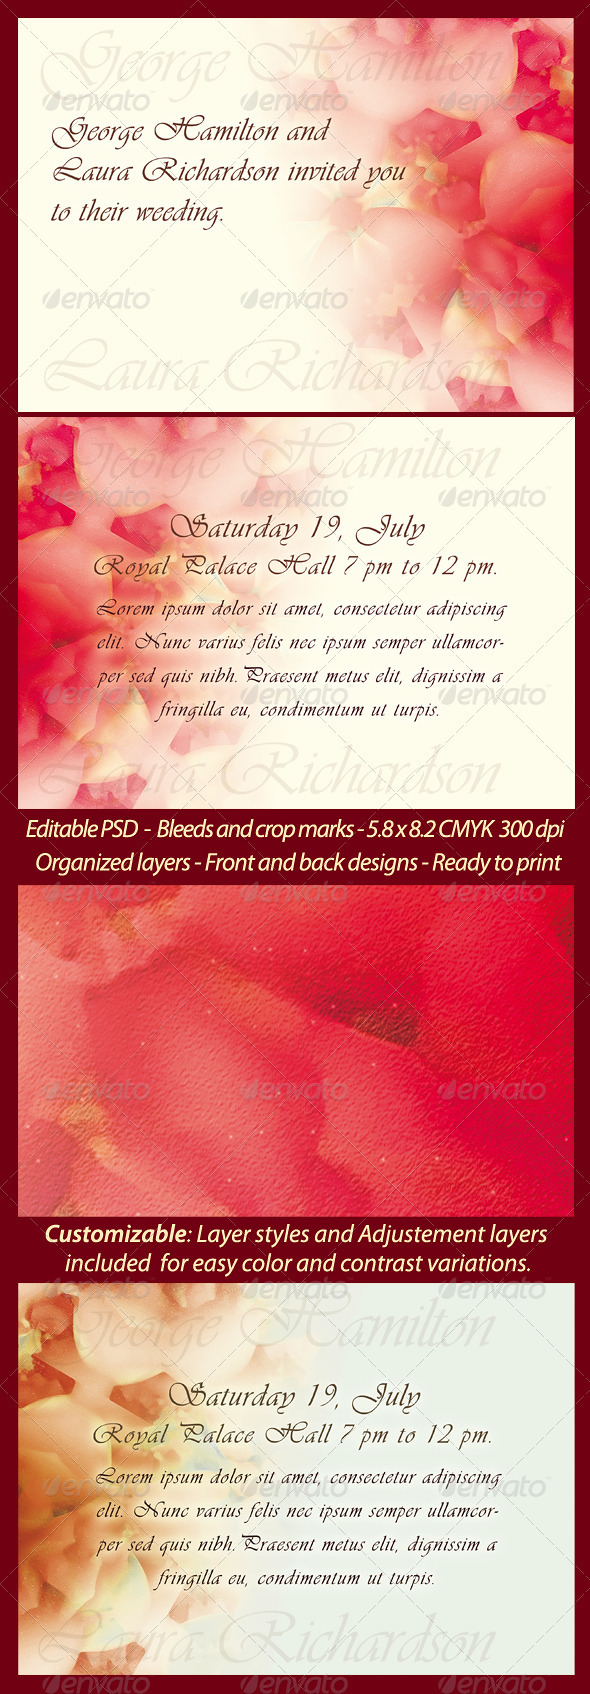 Wedding/Engagement Invitation Template by Rudimencial | GraphicRiver